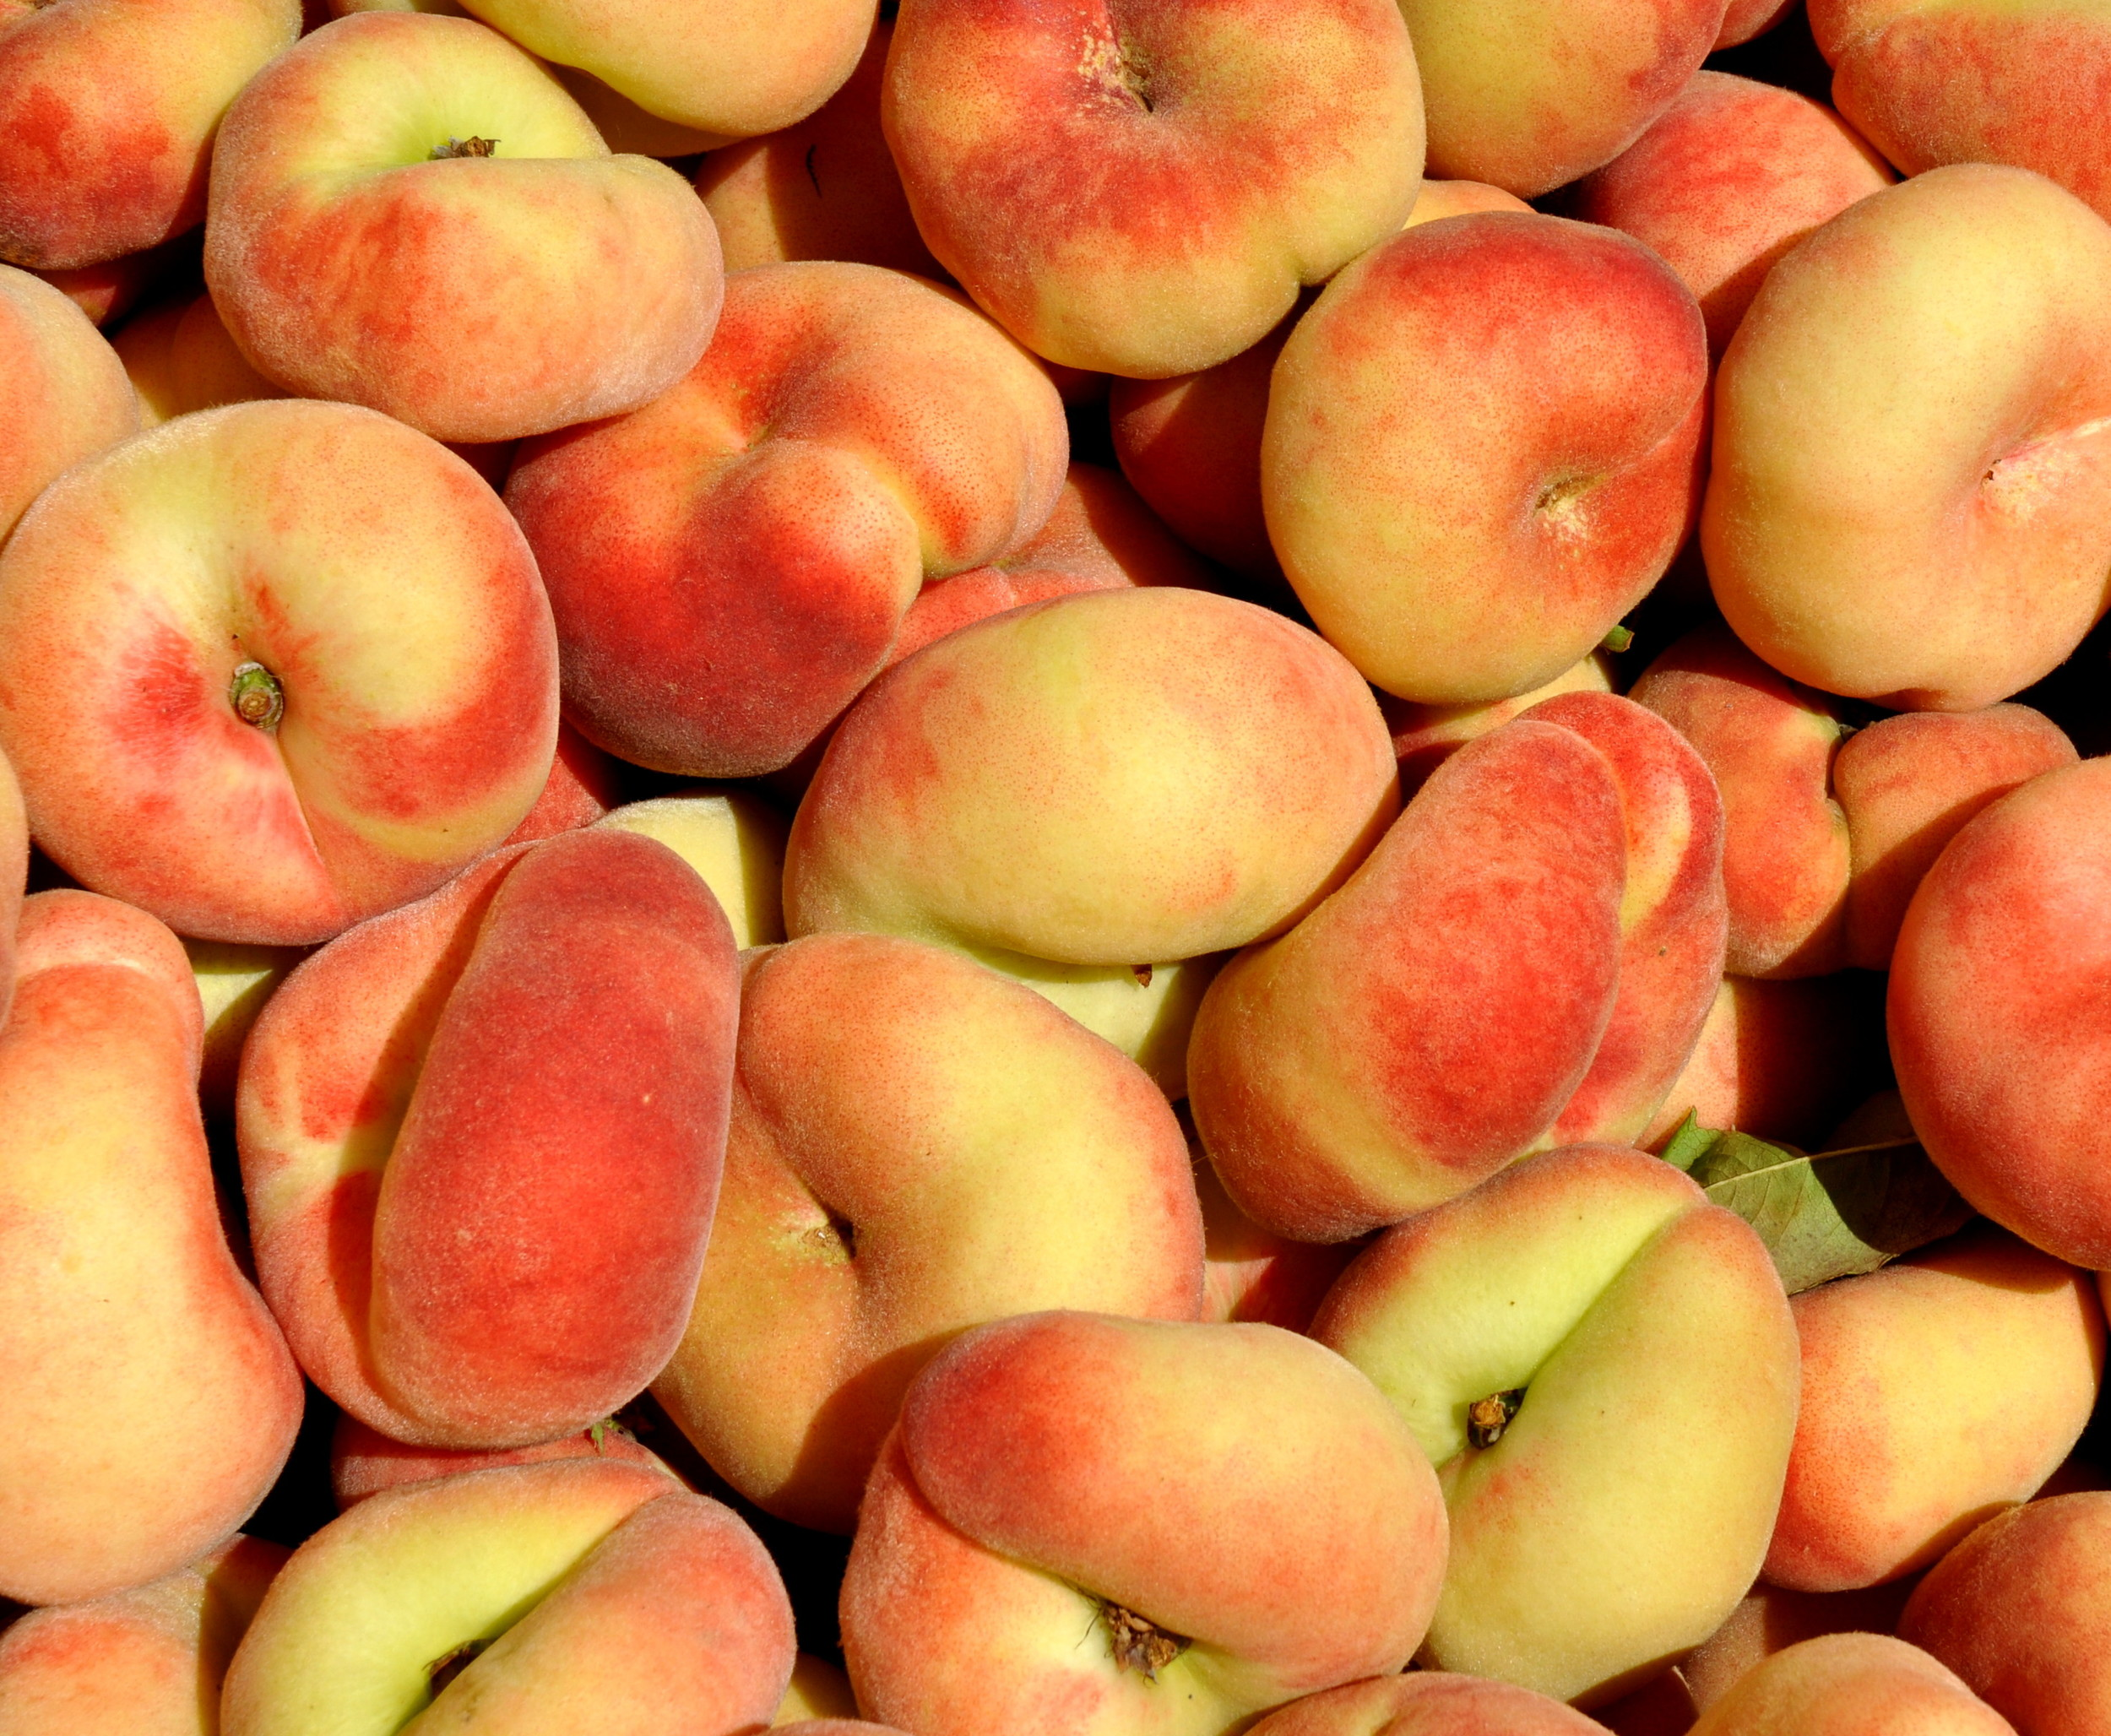 Donut peaches from ACMA Mission Orchards. Photo copyright 2013 by Zachary D. Lyons.